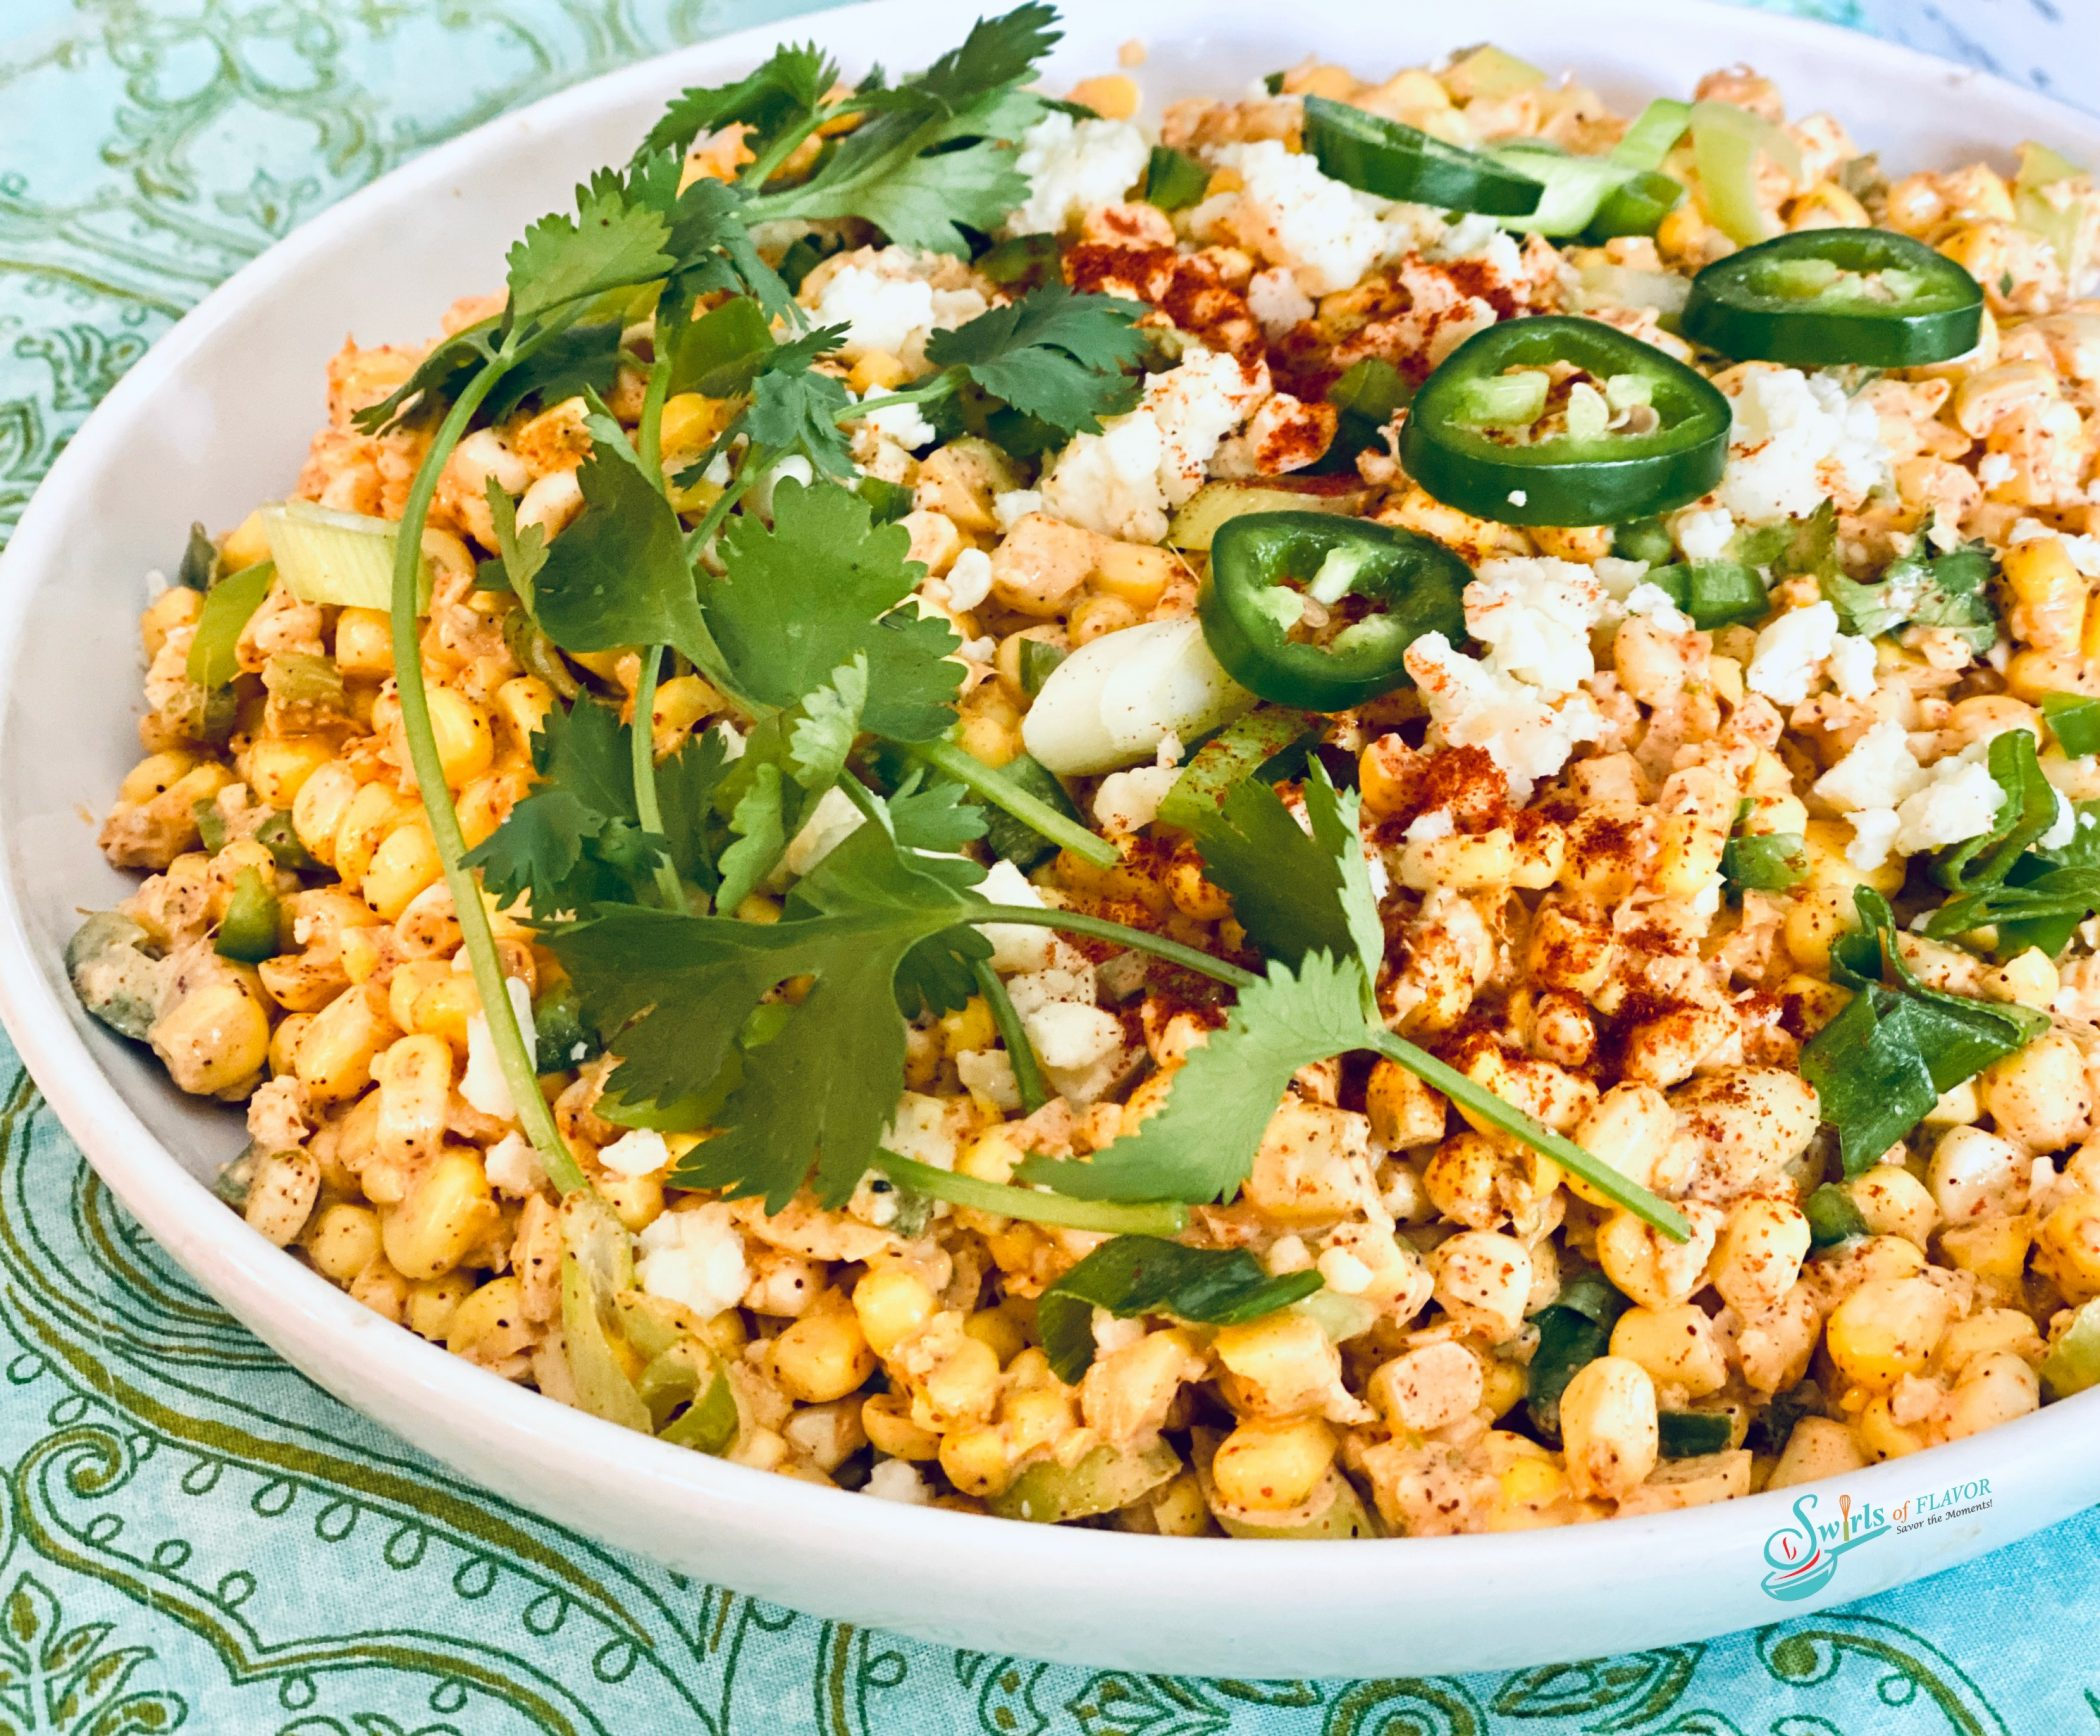 corn, jlapeno and cheese in white bowl